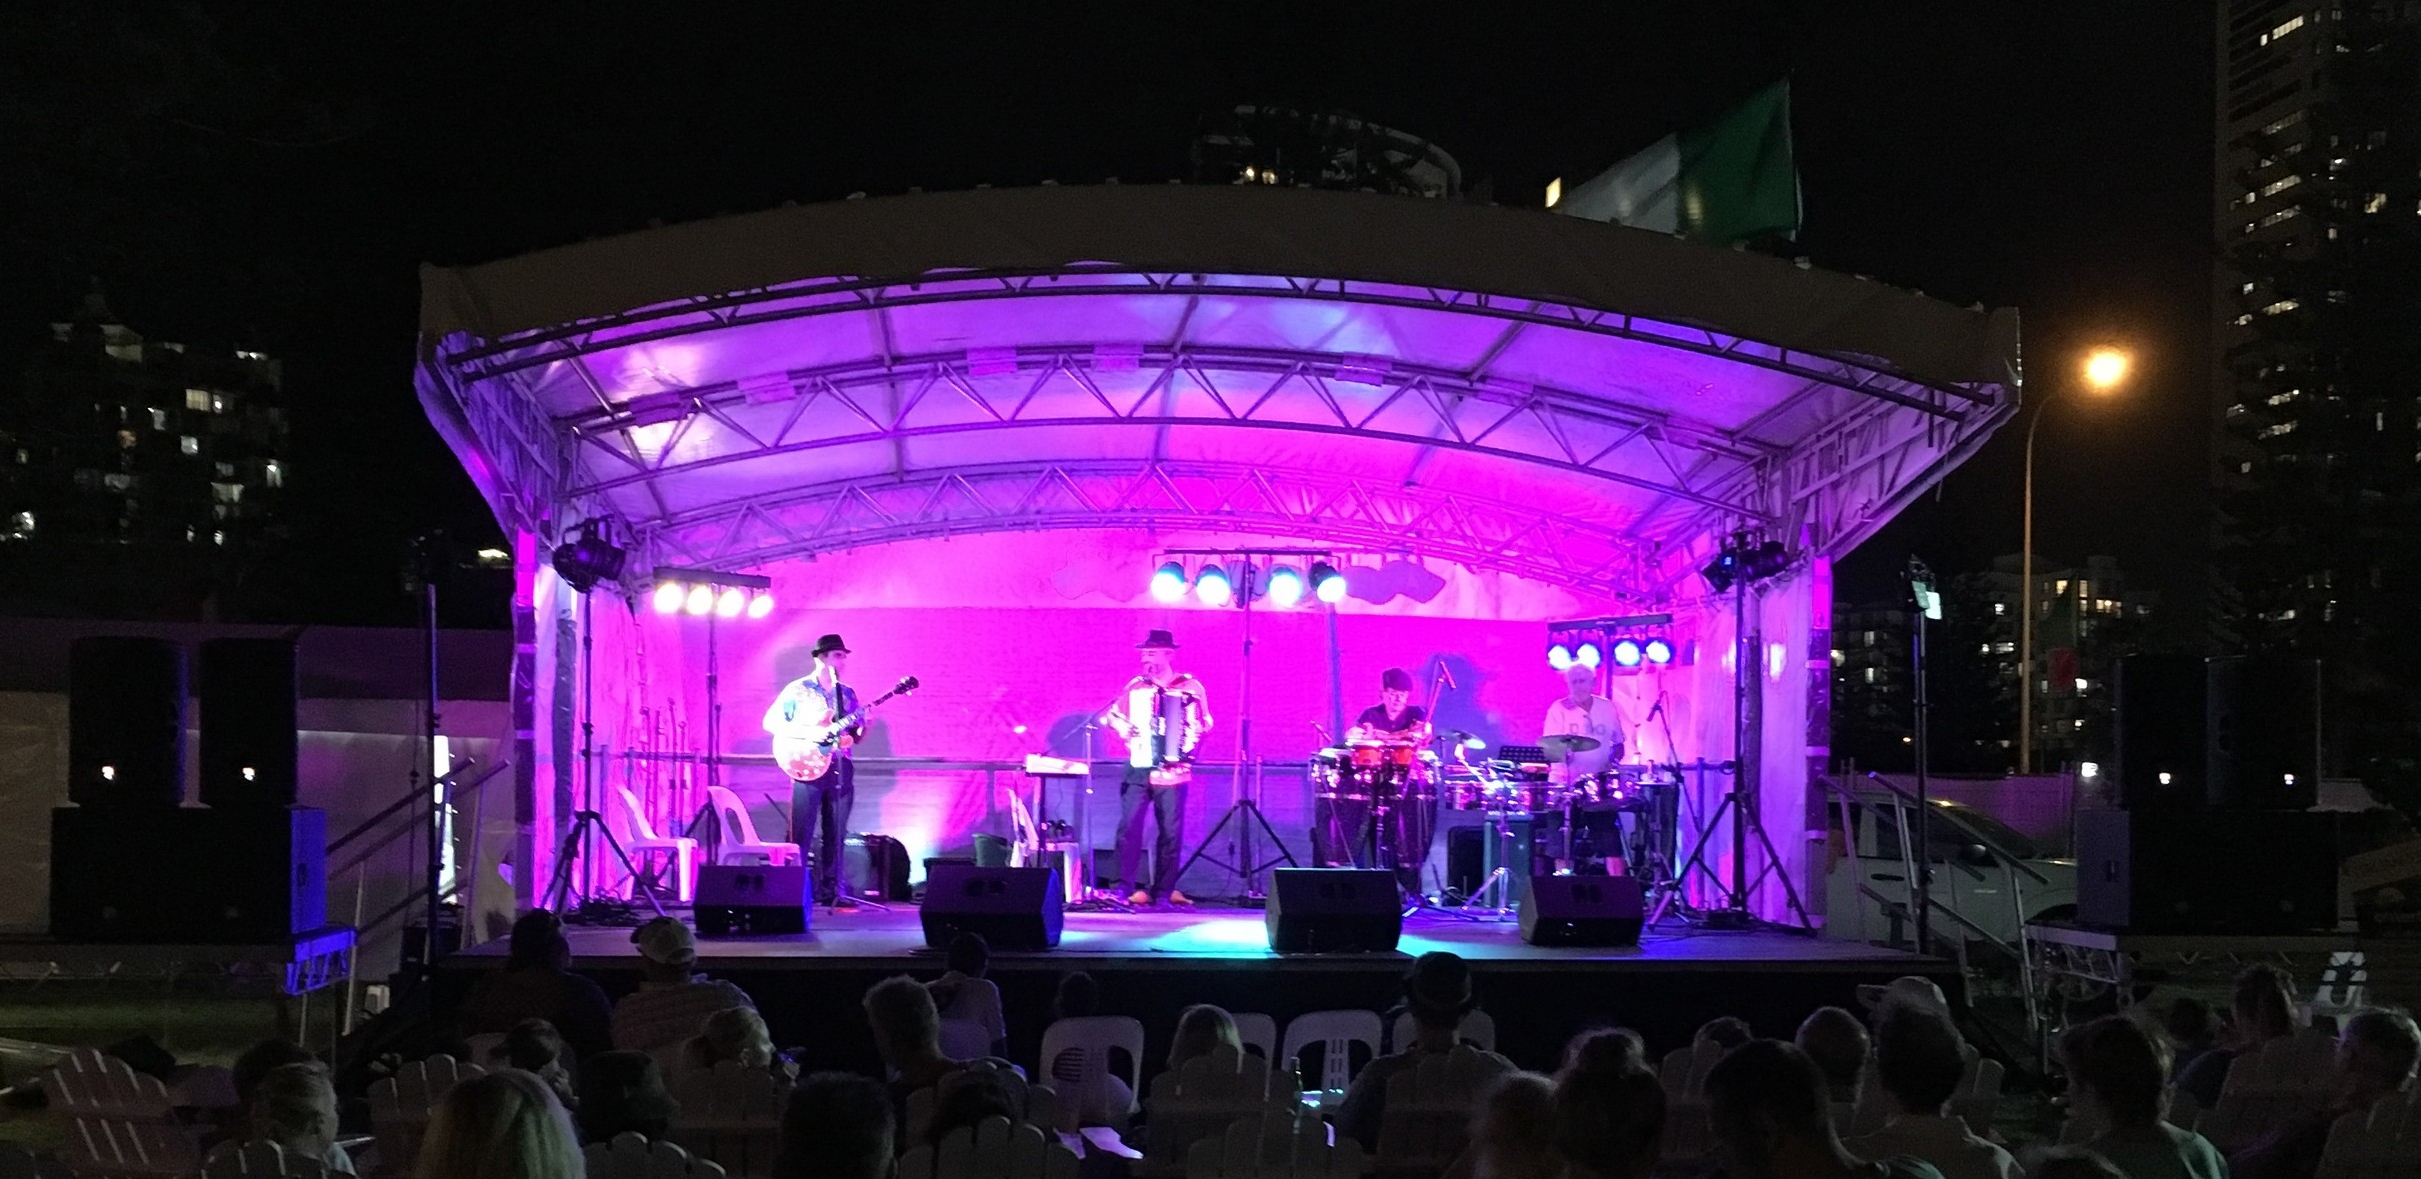 Copy of Outdoor sound system and stage lighting for Italian Festival, Broadbeach - Latin Mafia playing